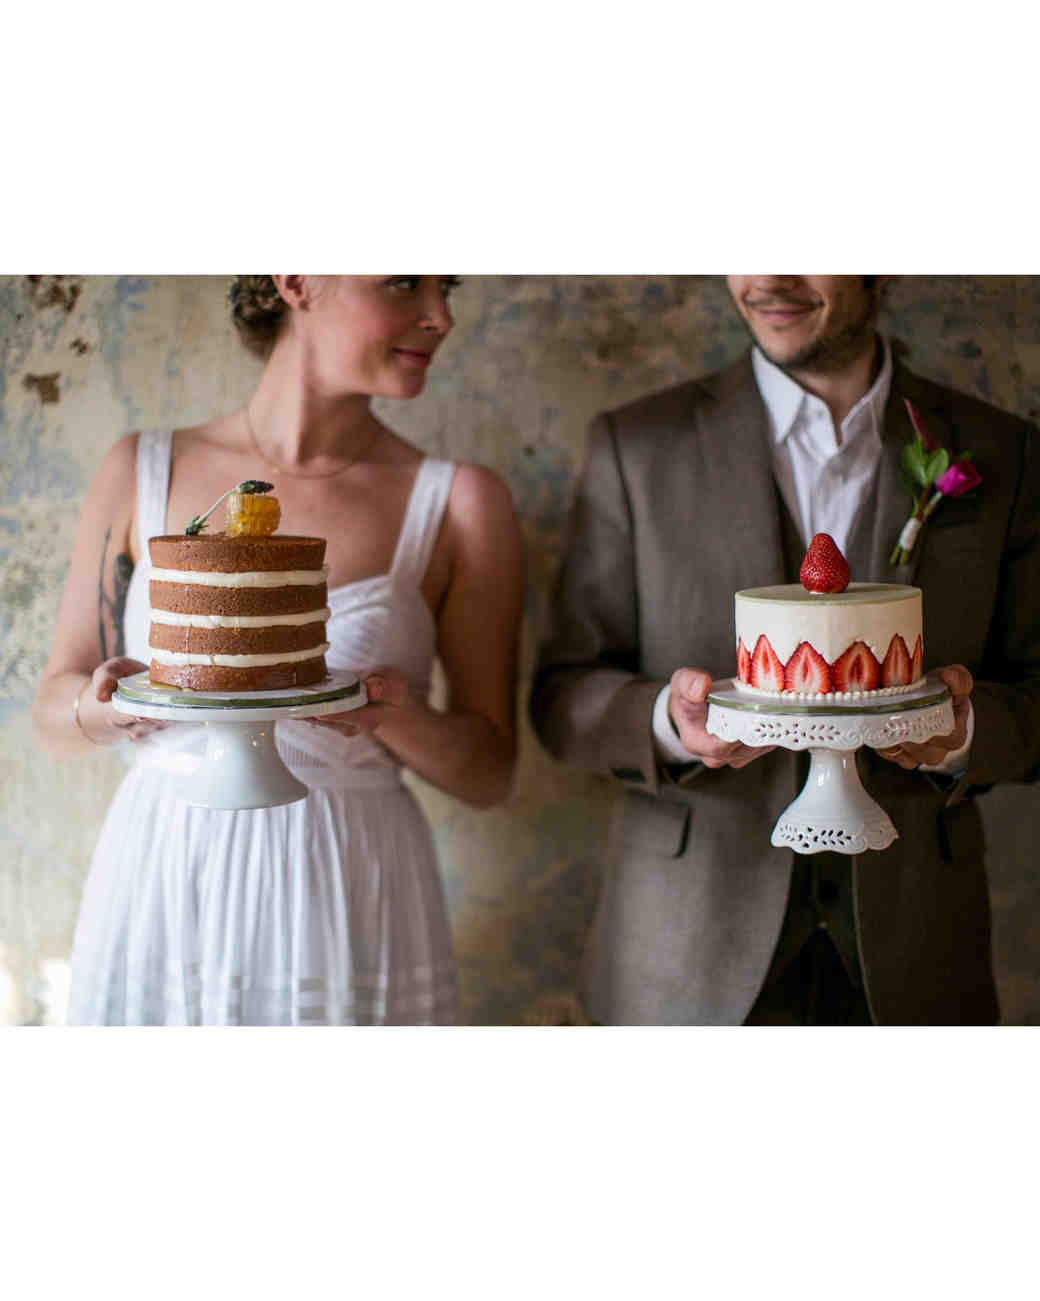 Staggering Wedding Cake Flavors You Tried Yet Martha Stewart Weddings Wedding Cake Flavors Fillings List Wedding Cake Flavors Almond wedding cake Wedding Cake Flavors